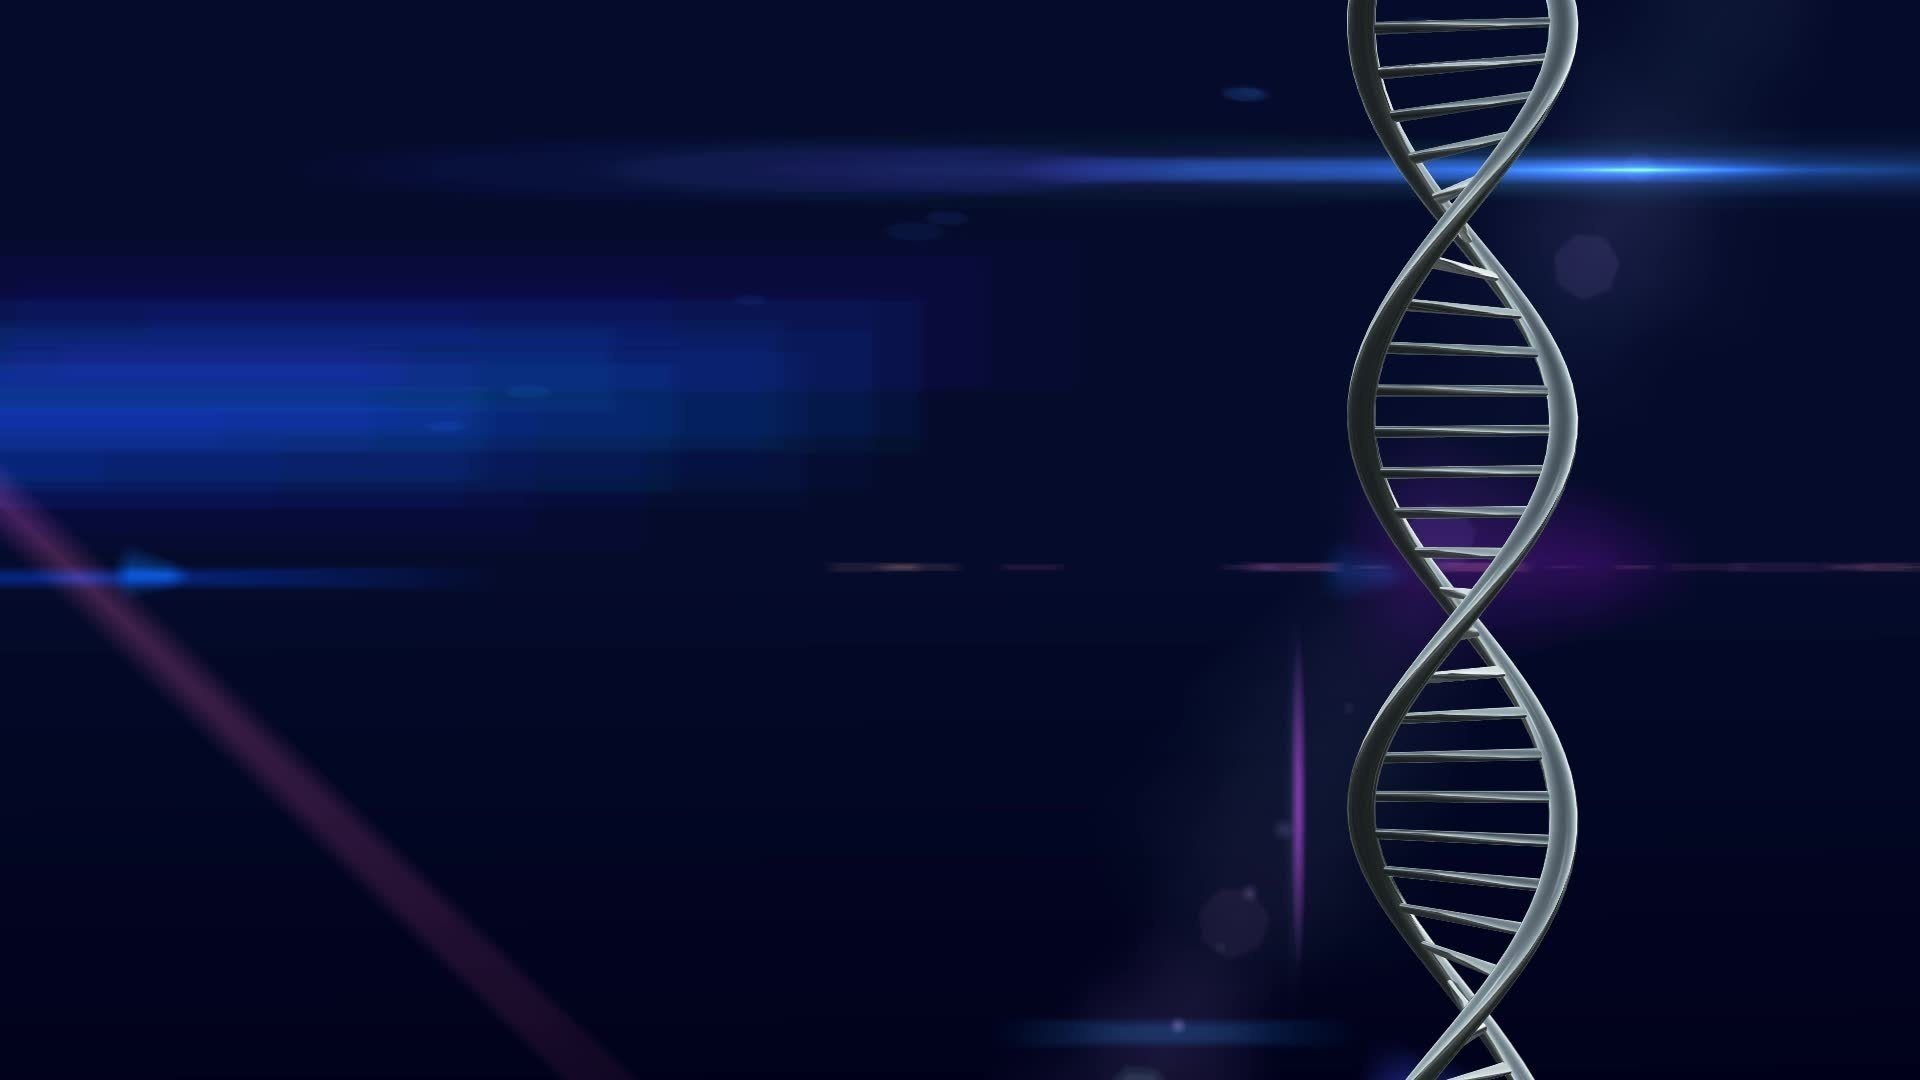 Dna wallpaper for pc